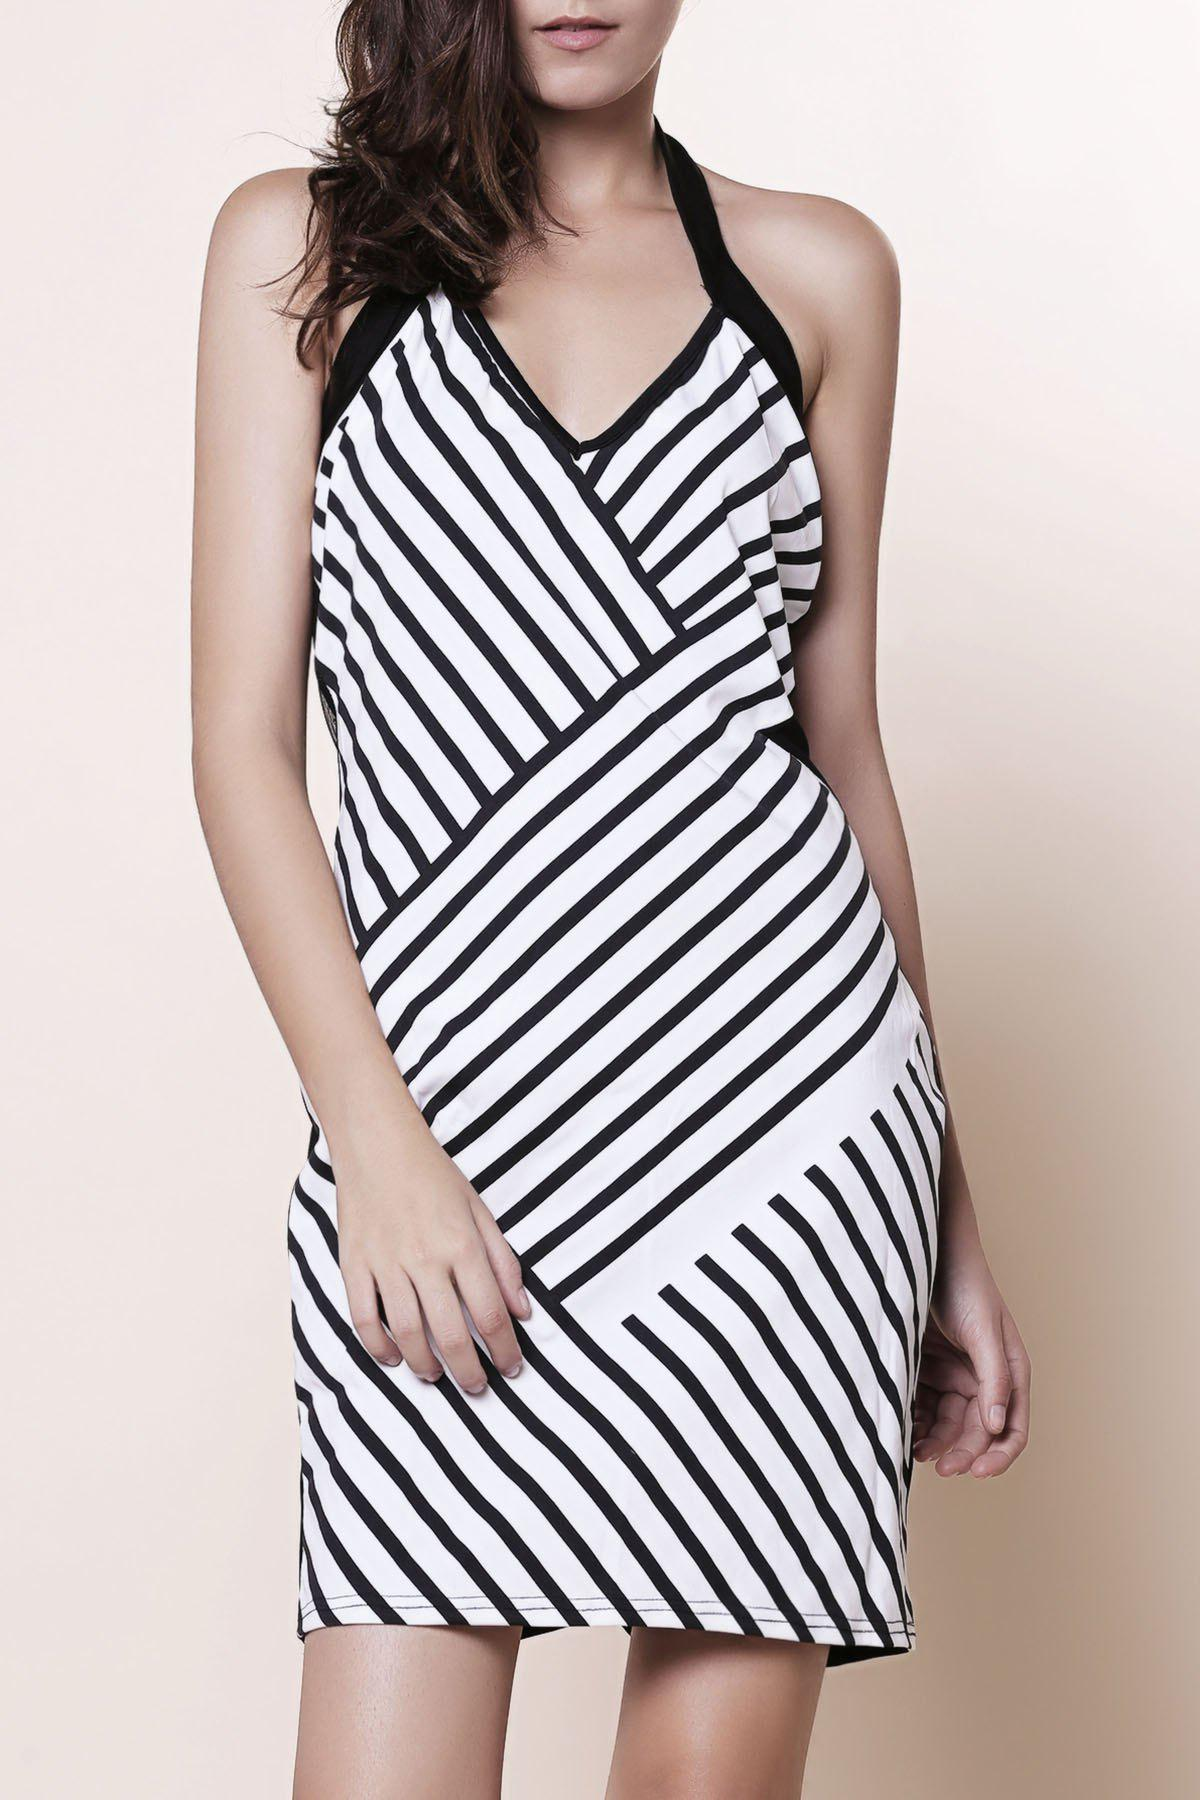 Trendy Backless Striped Halter Sheath Club Dress